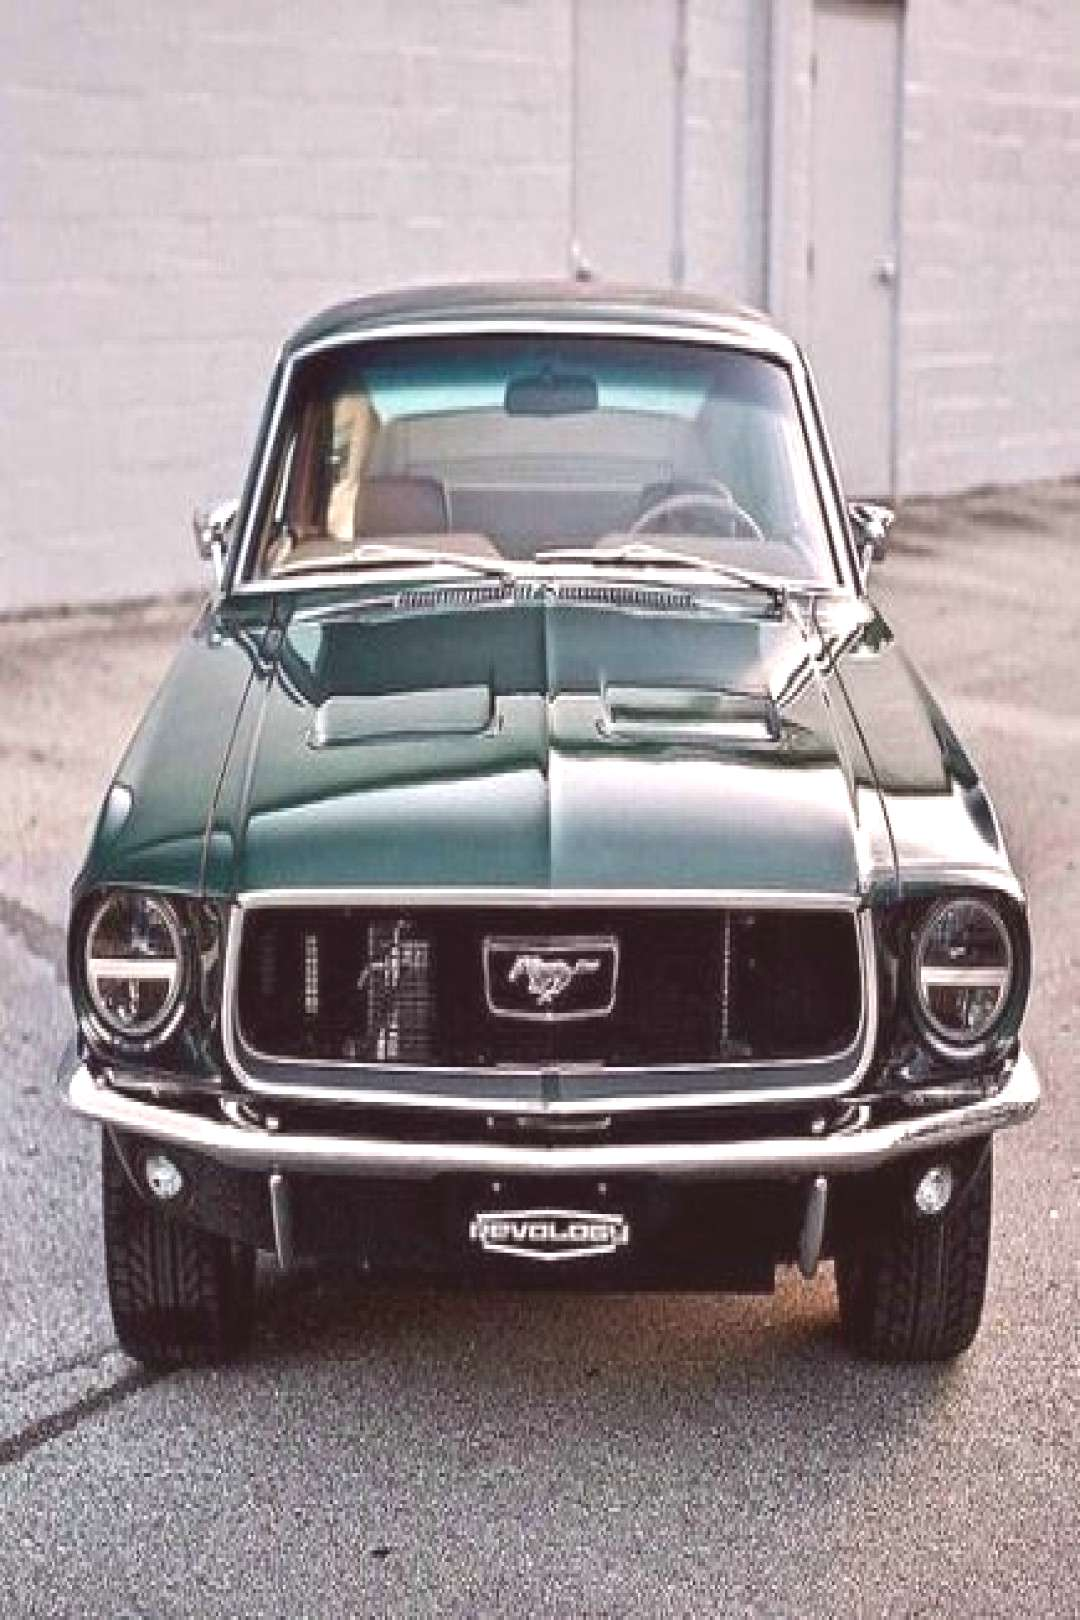 Mustang cars 1960s 48+ Ideas for 2019